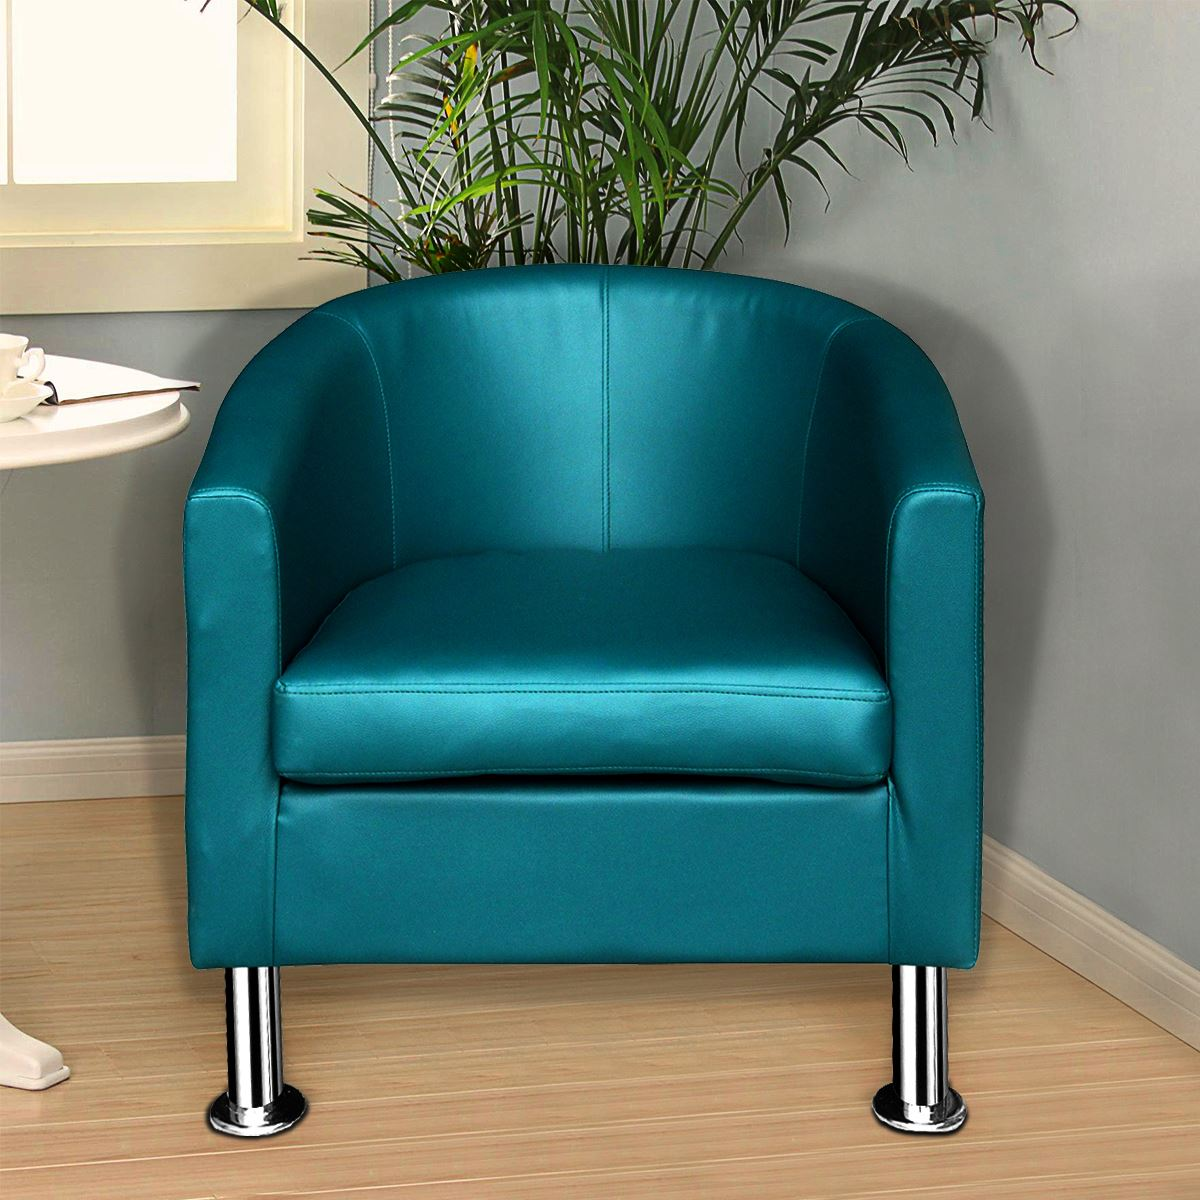 Panana Velvet / Faux Leather Tub Chair Armchair Club Chair Dining Living Room Cafe Padded Seat